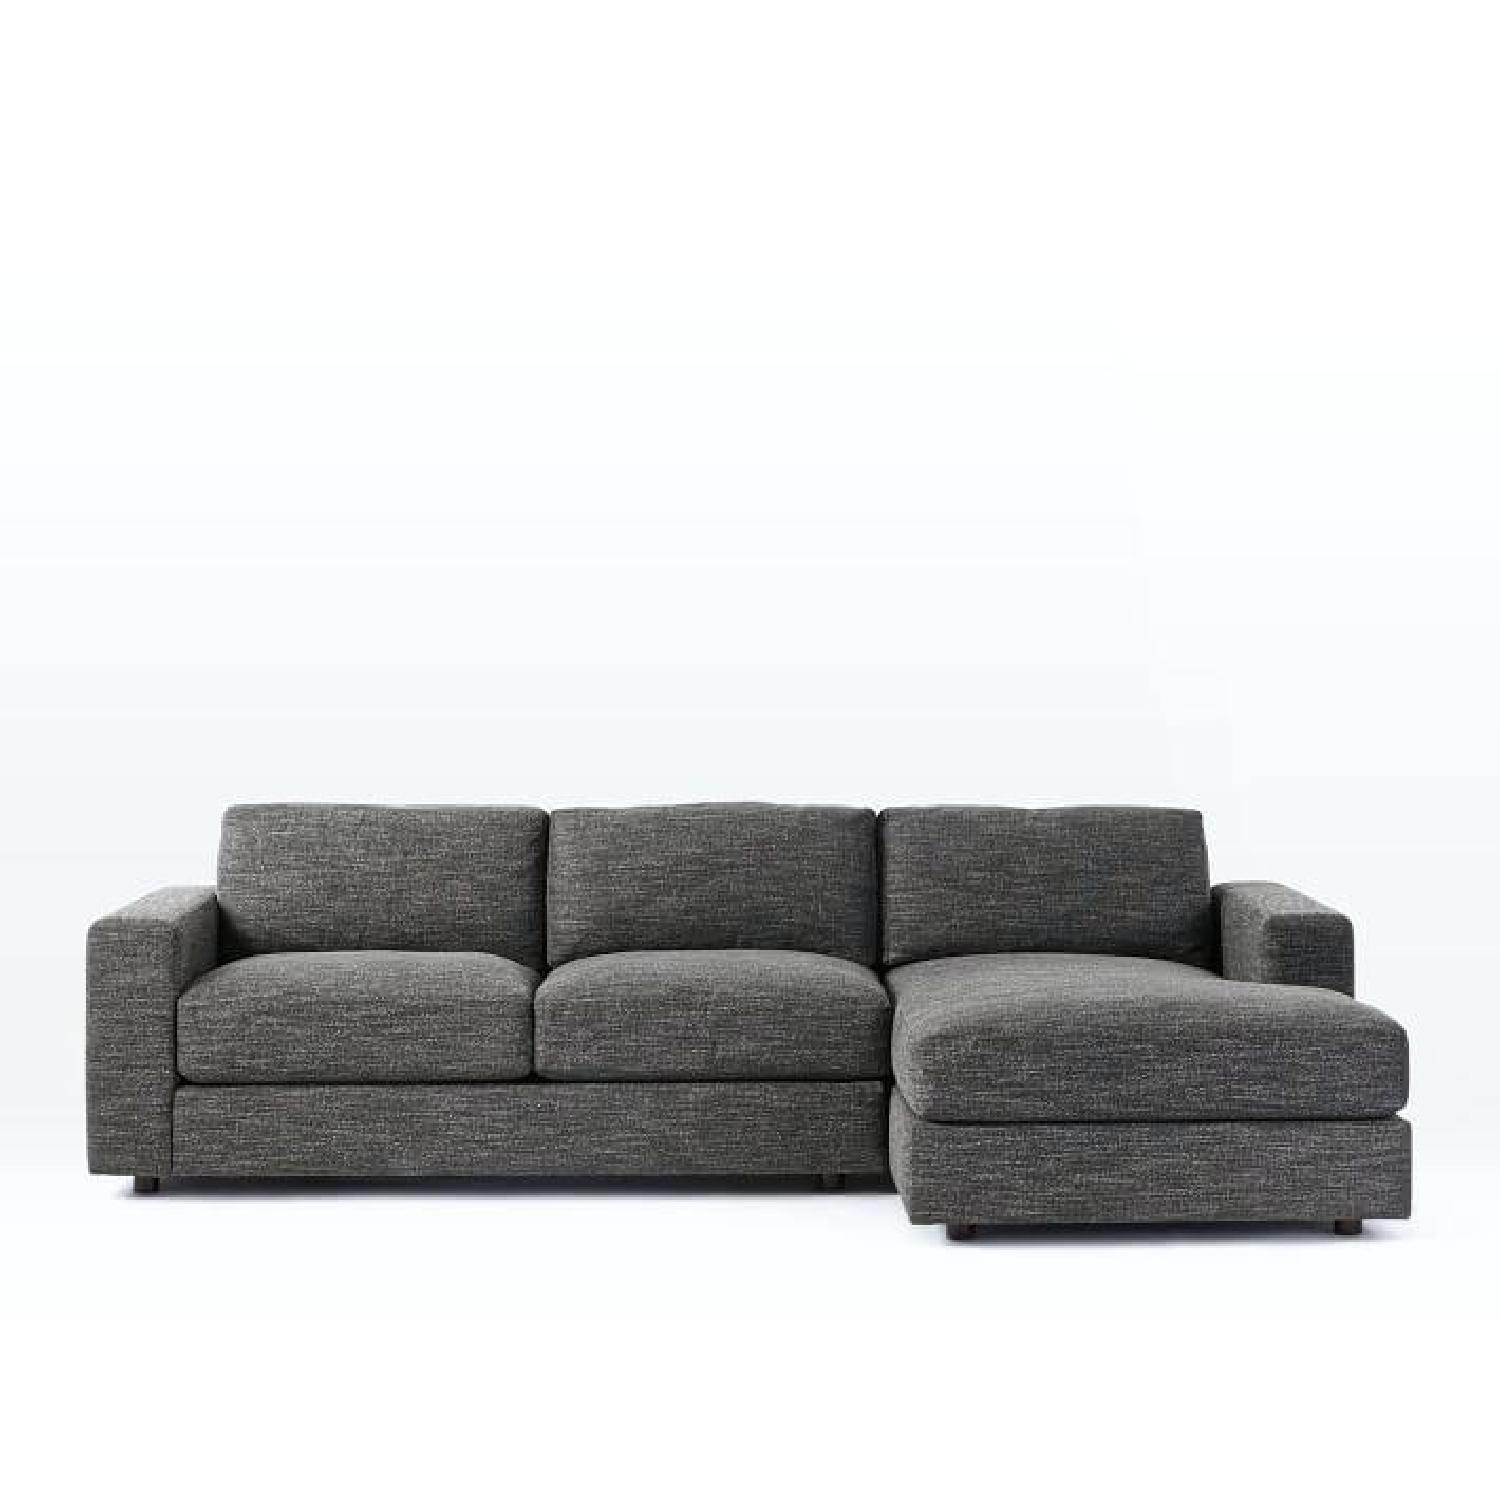 West Elm Urban 2-Piece Sectional Sofa